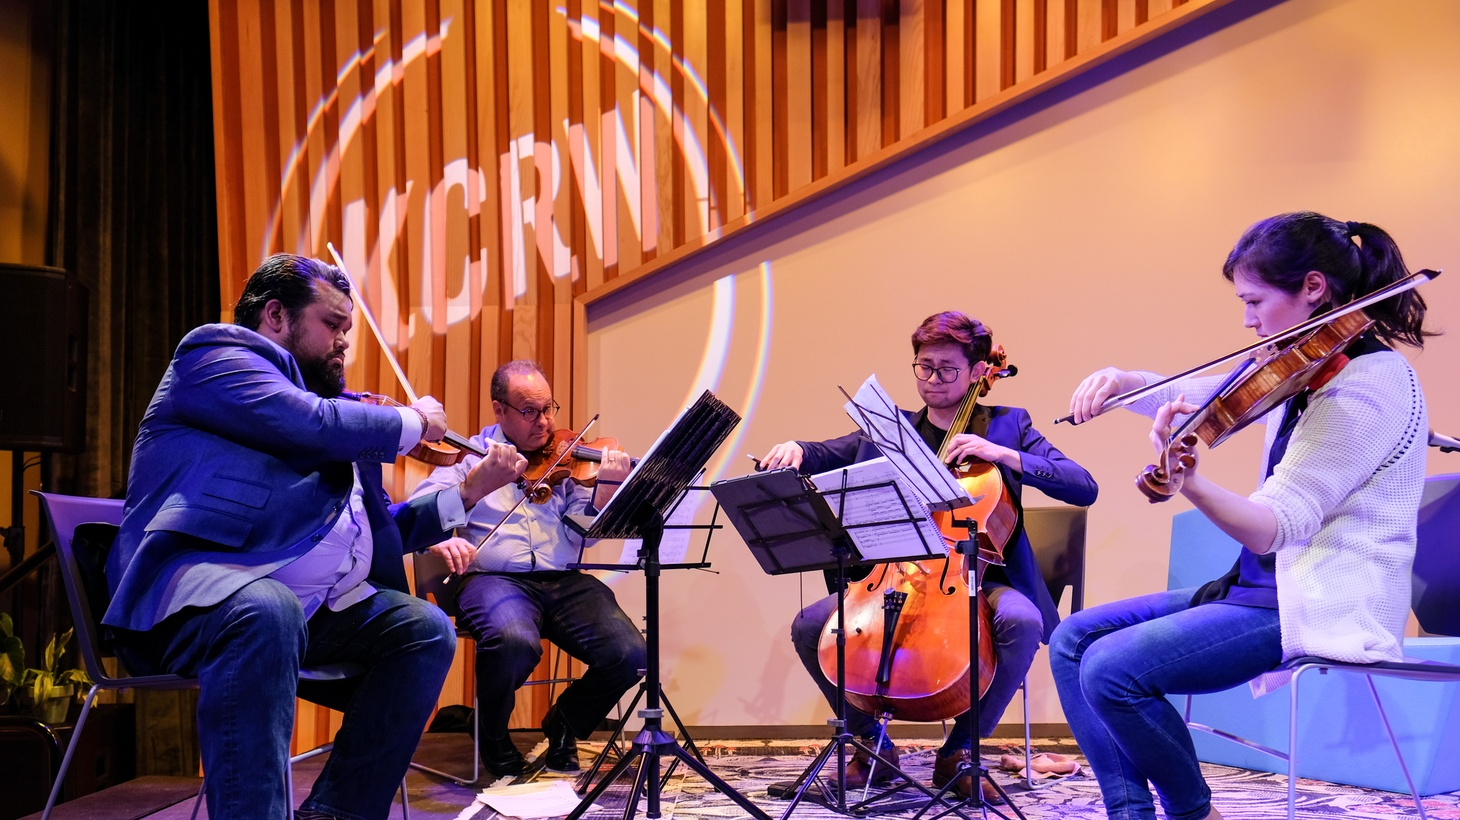 The Street Symphony quartet performing at KCRW.